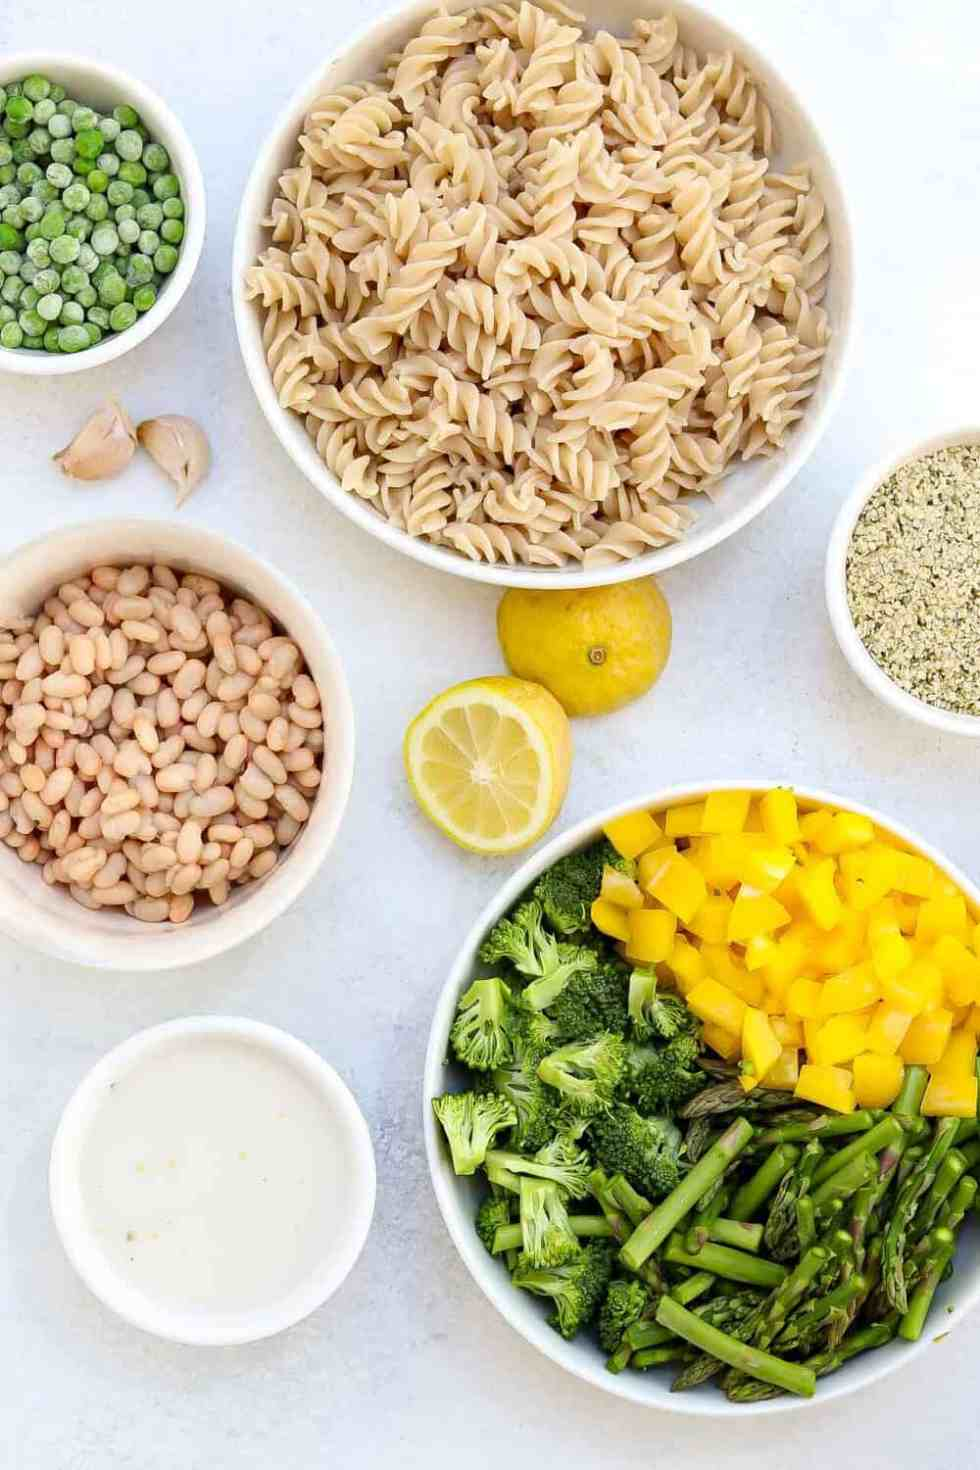 Ingredients for this recipe separated in white bowls on a white backdrop.